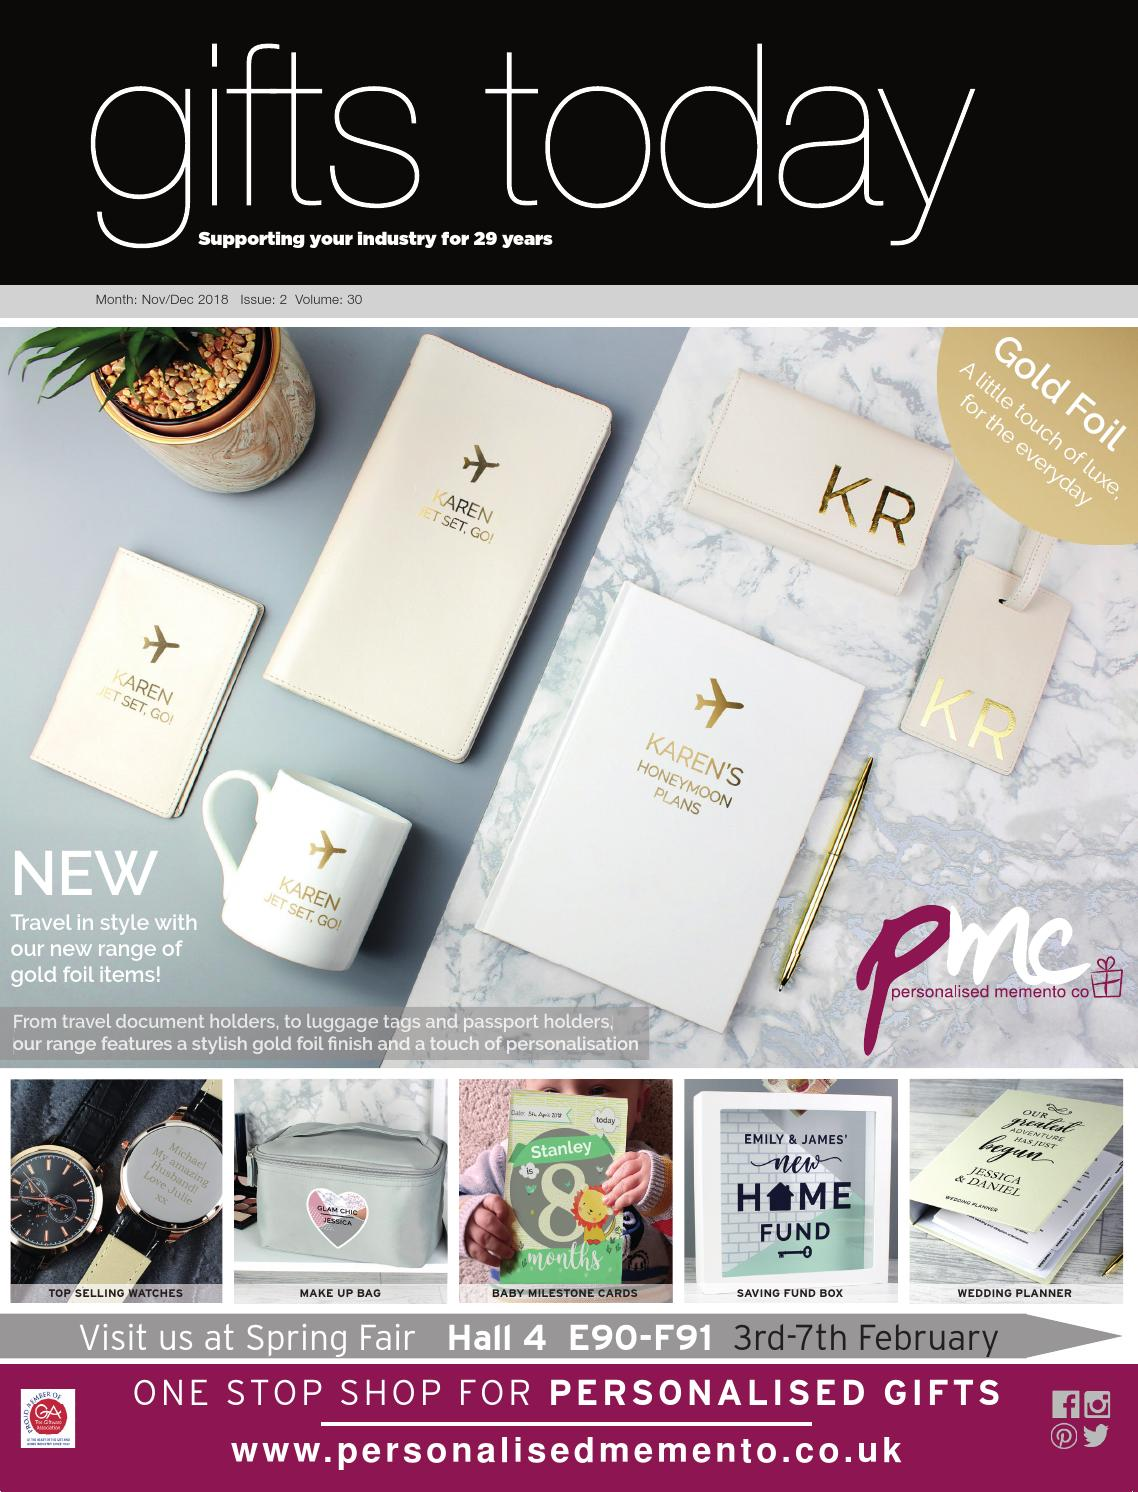 Gifts Today Nov/Dec 2018 by Lema Publishing - issuu